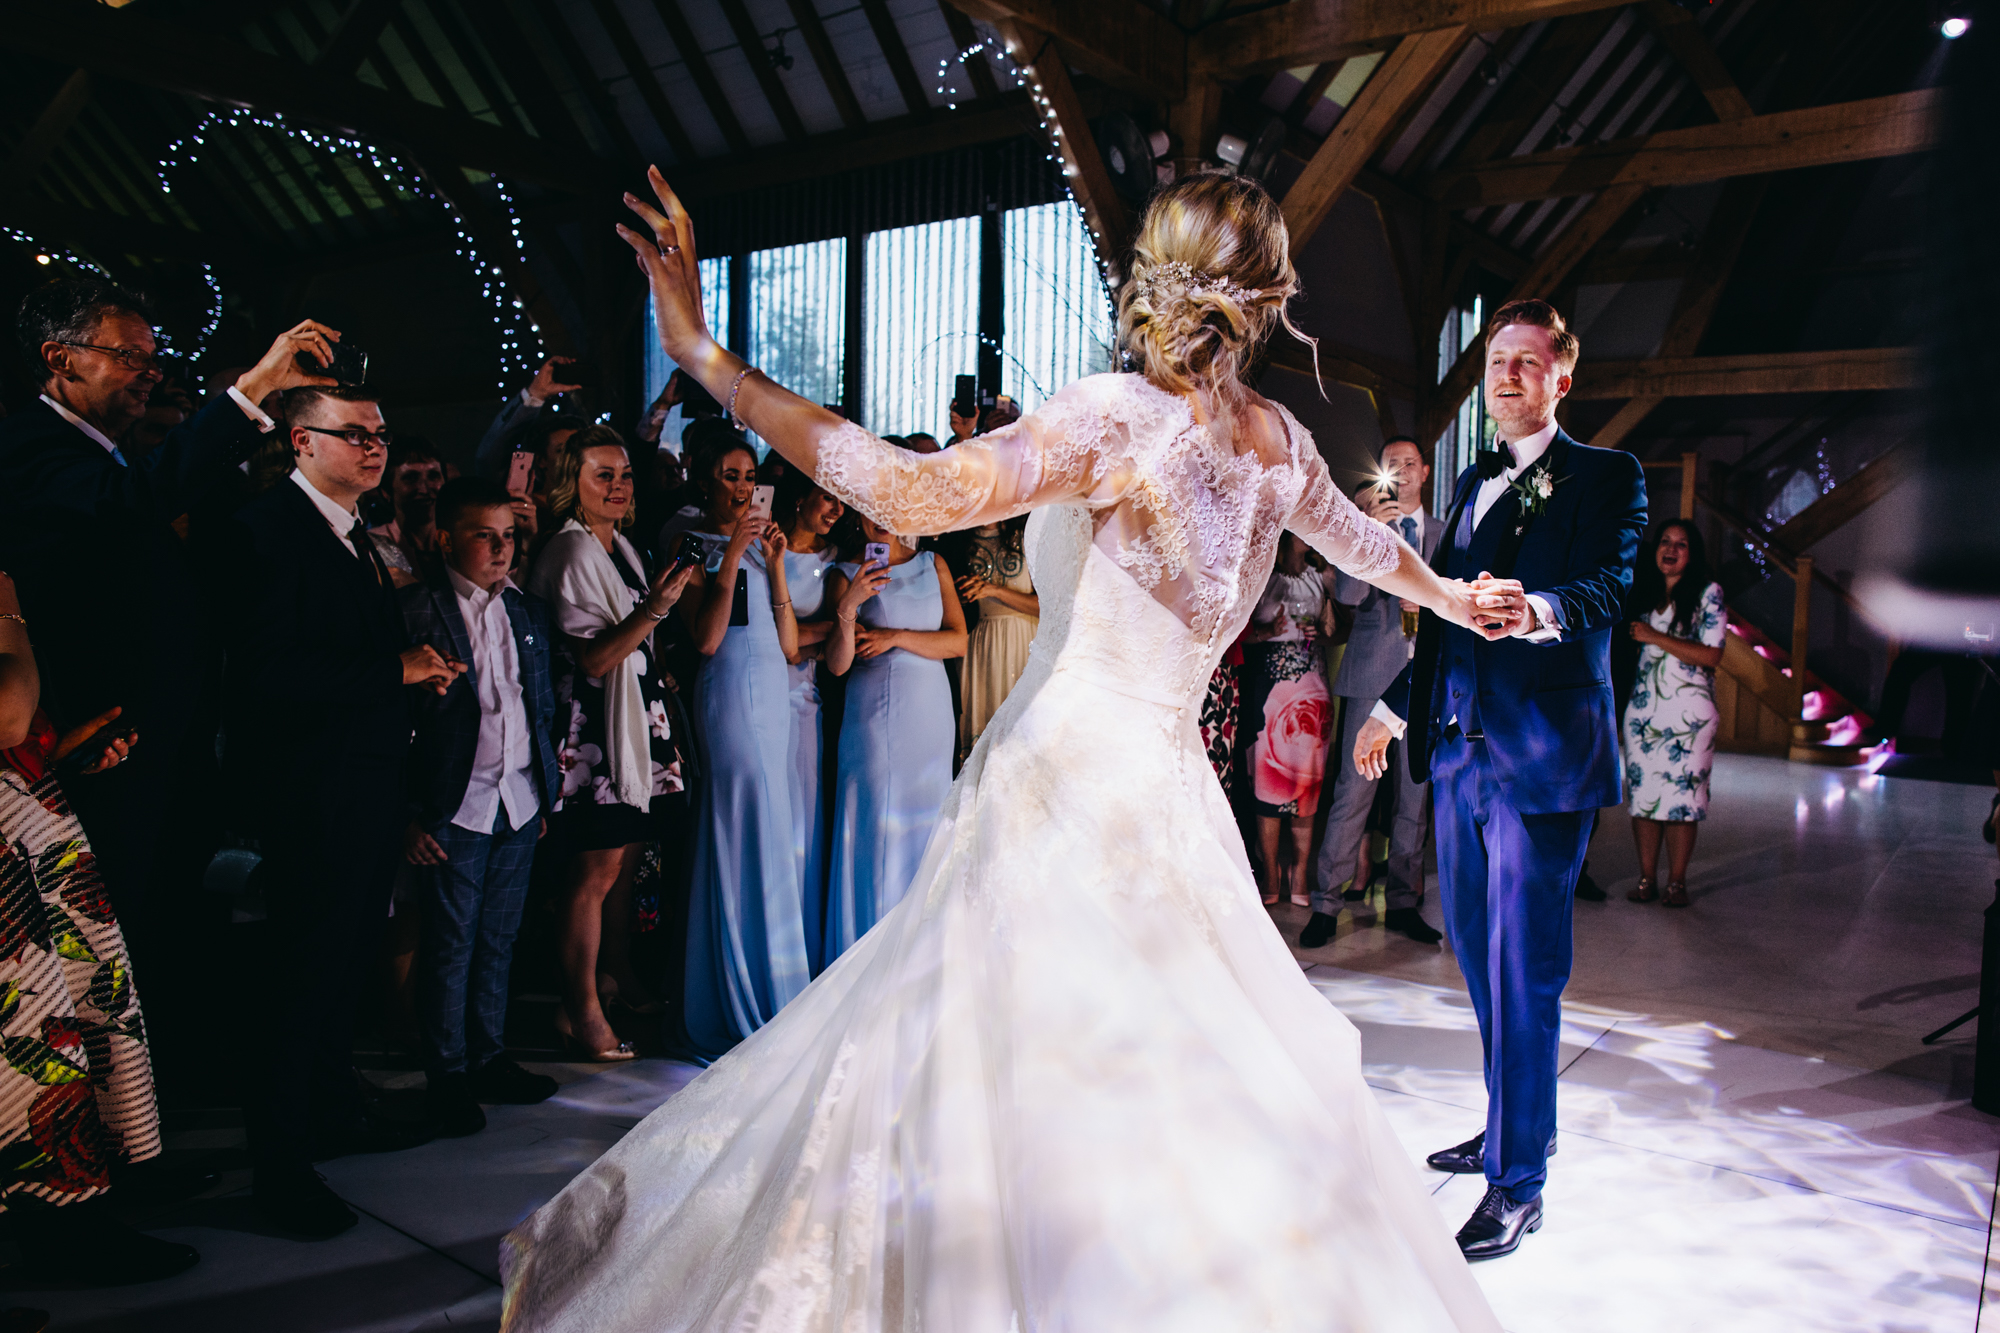 A professional photo of a couple's first dance on their wedding day